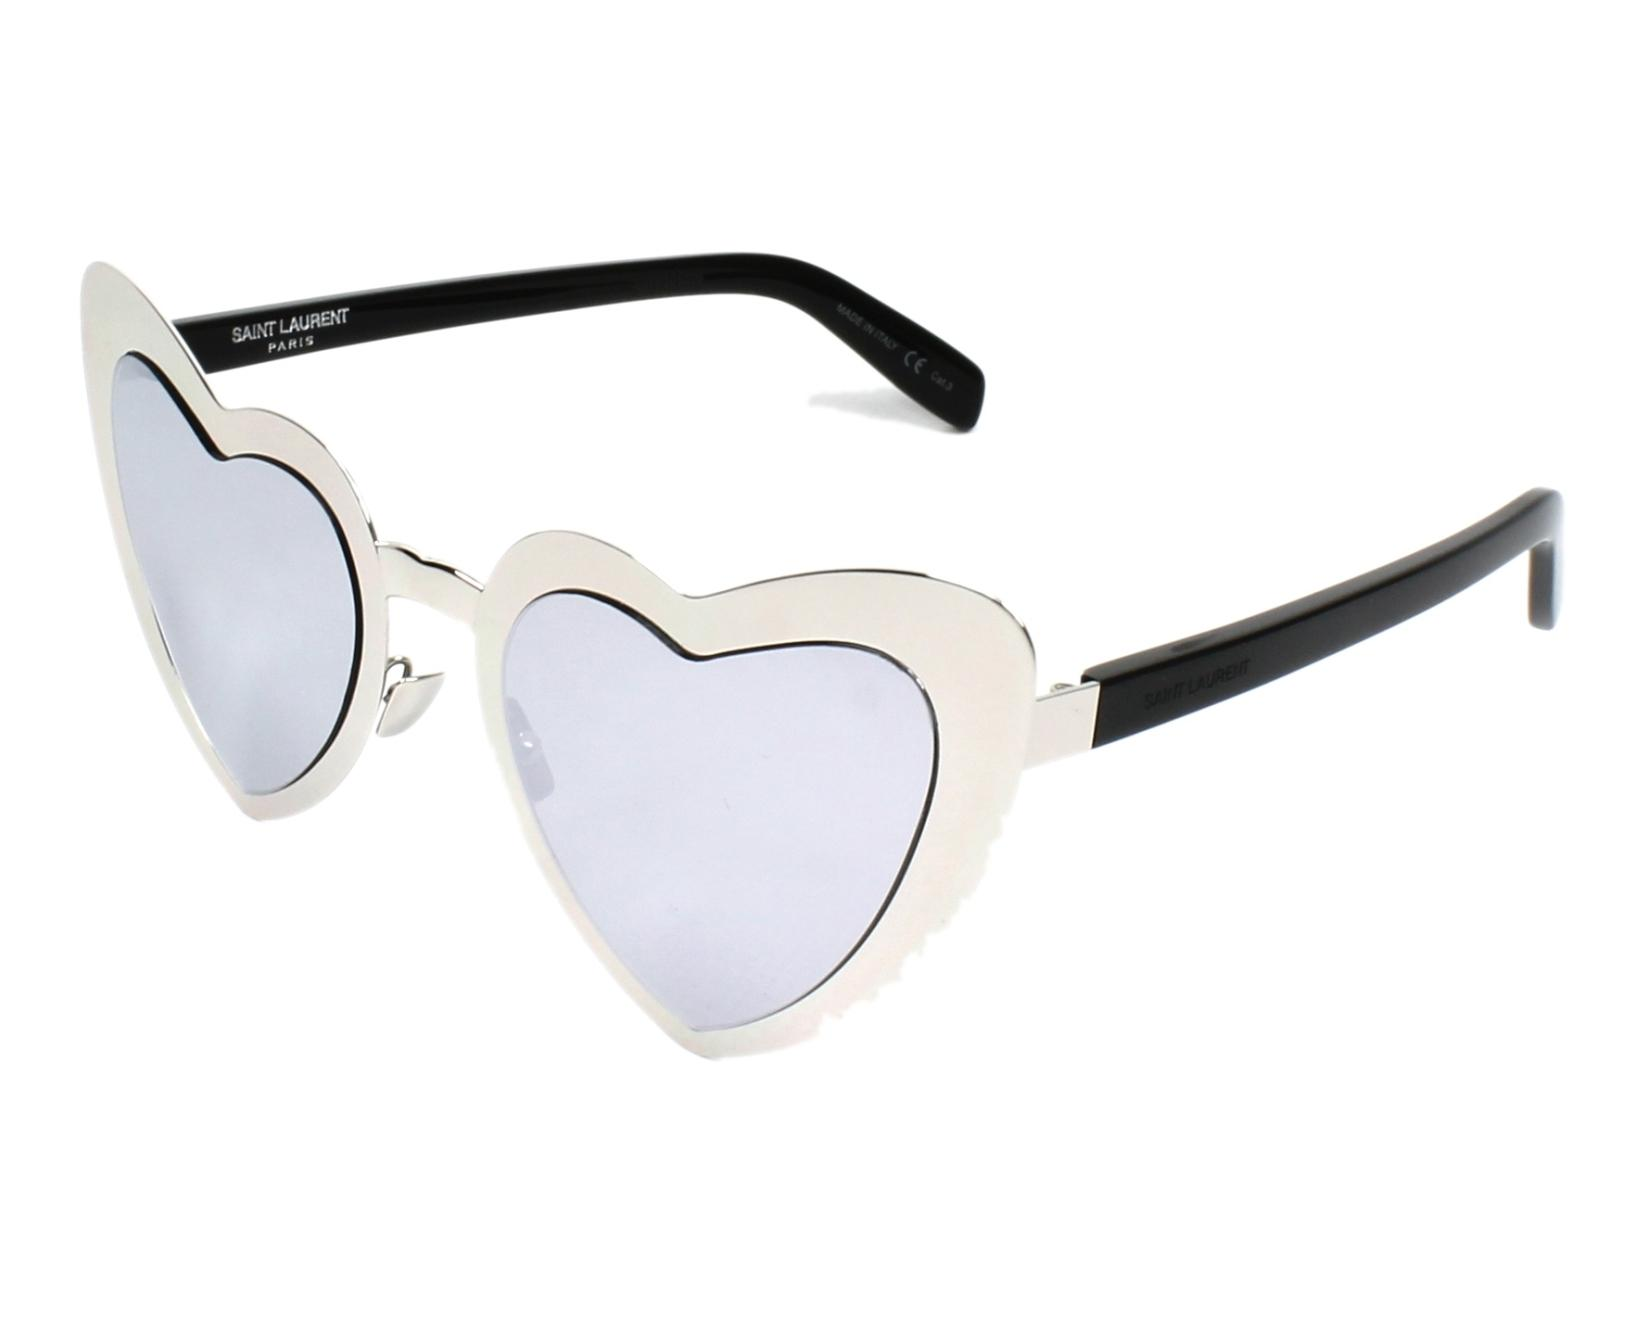 6067158407 Sunglasses Yves Saint Laurent SL-196 001 55-23 Silver Black profile view